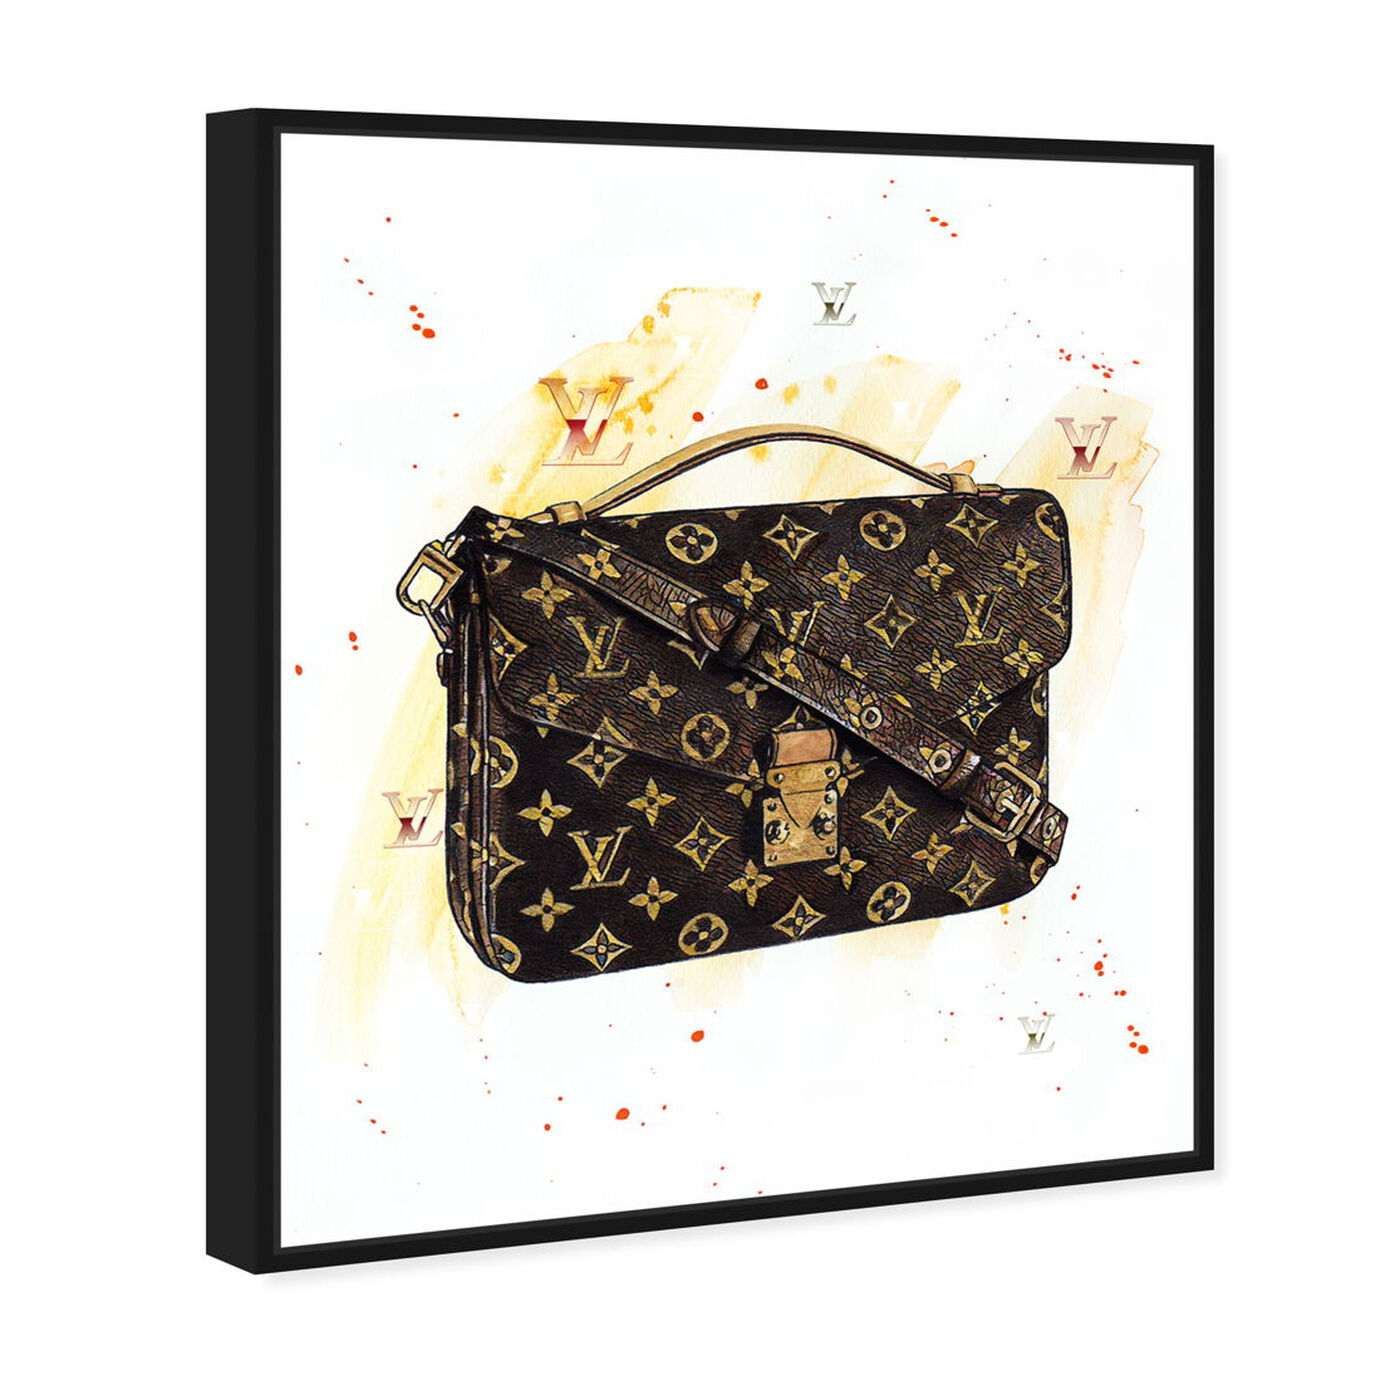 Angled view of Doll Memories - Lavish Hand Bag Splashes featuring fashion and glam and handbags art.